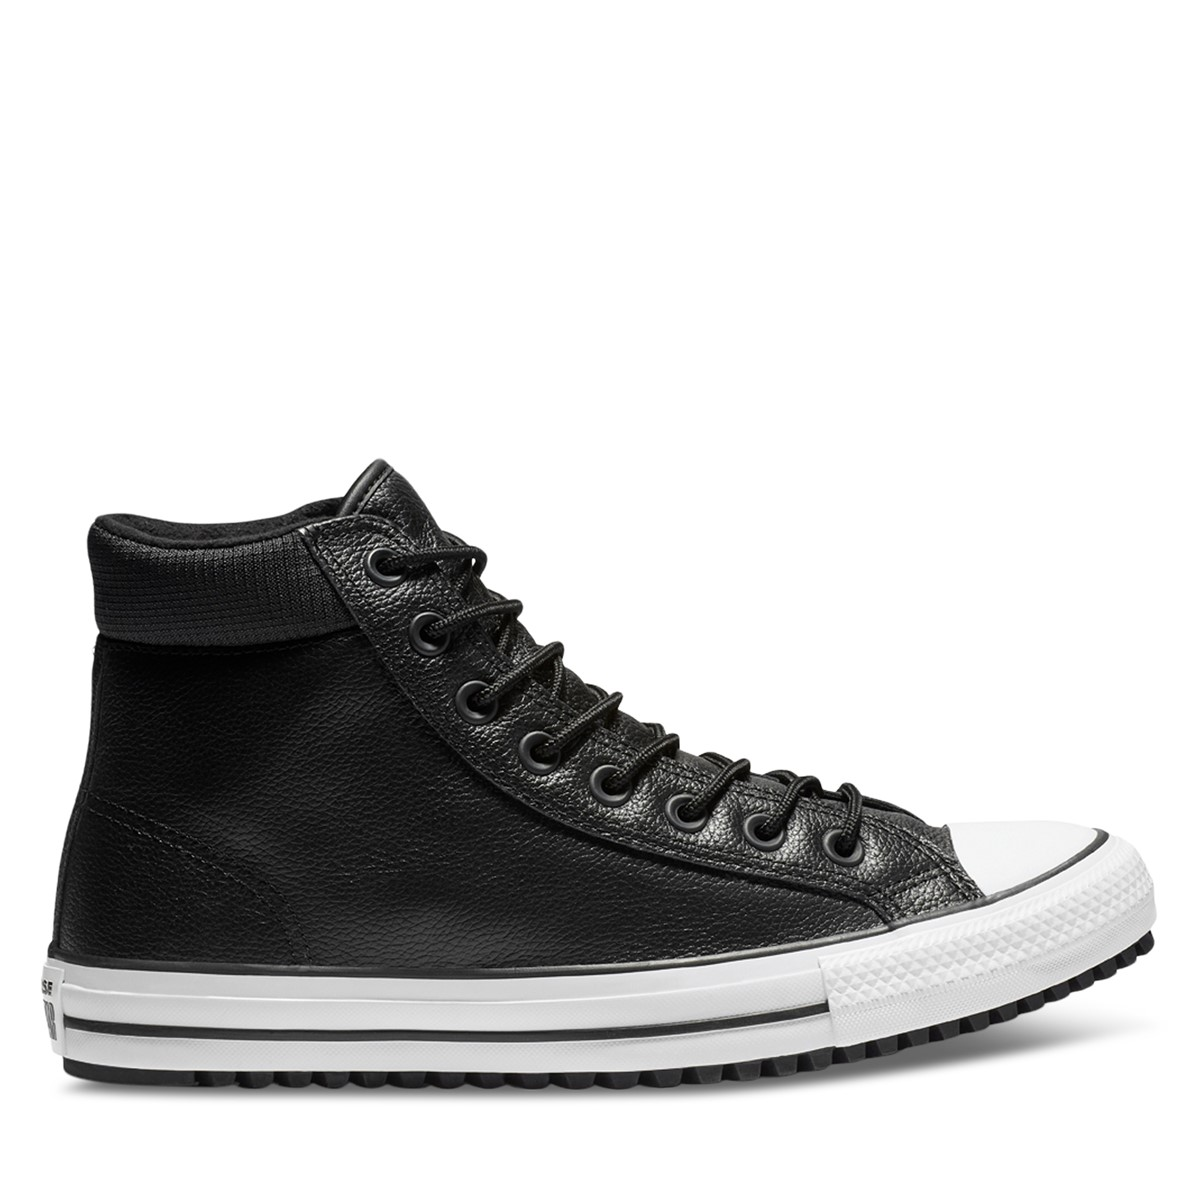 Men's Utility Chuck Taylor All Star PC Hi Boots in Black